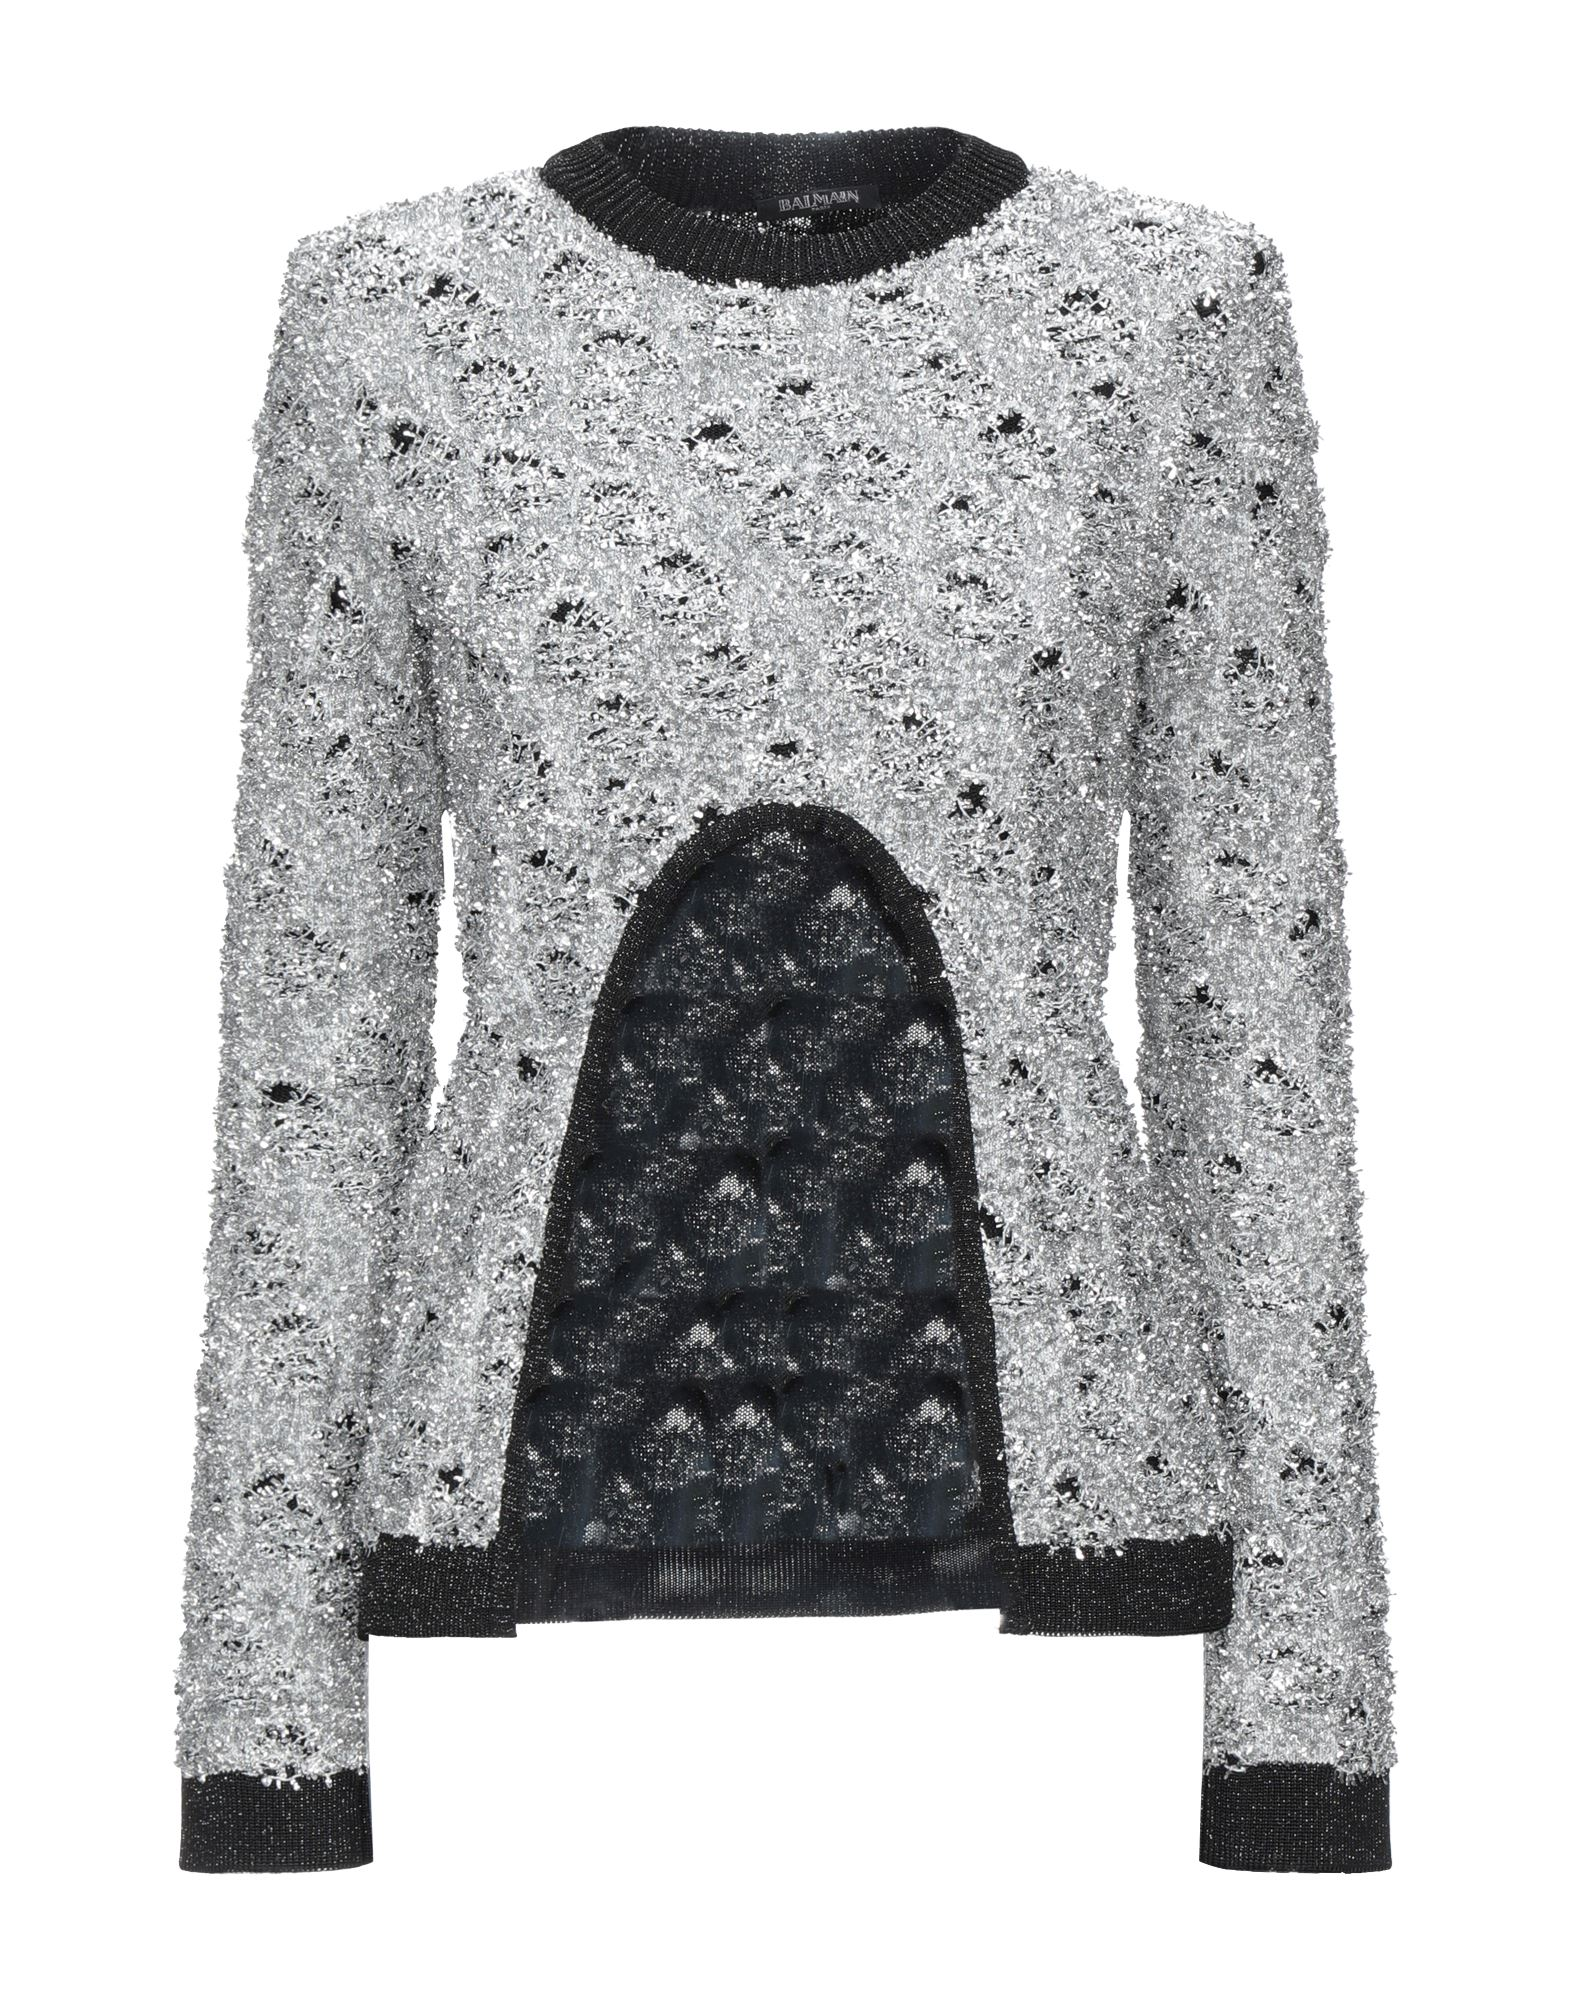 BALMAIN Sweaters. knitted, lamé, no appliqués, lightweight knit, round collar, solid color, long sleeves, no pockets. 57% Viscose, 30% Polyamide, 12% Polyester, 1% Cupro